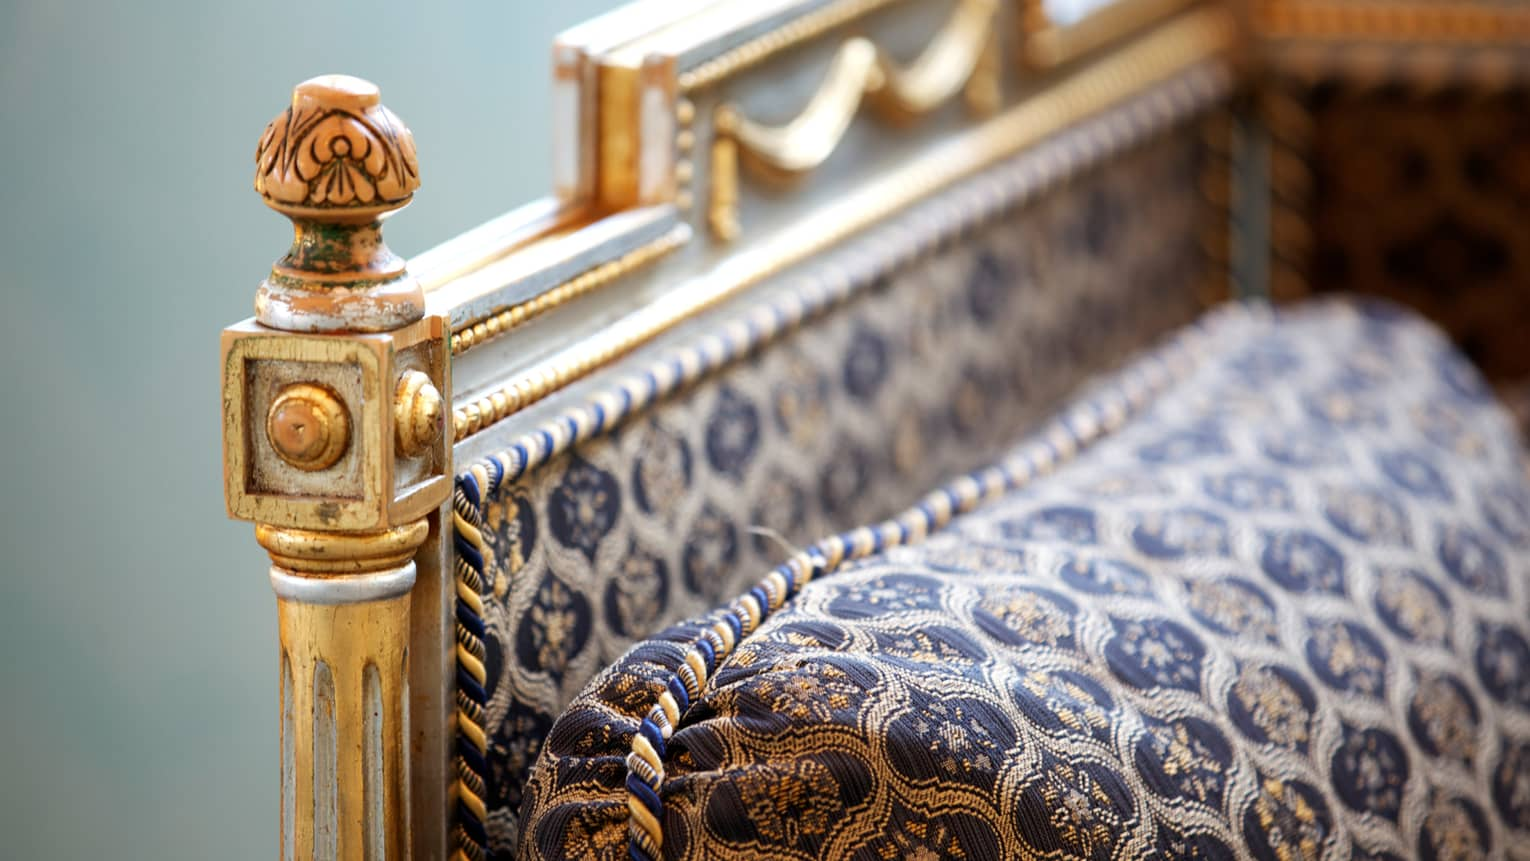 Close-up of neoclassical, traditional-style furniture with gold details